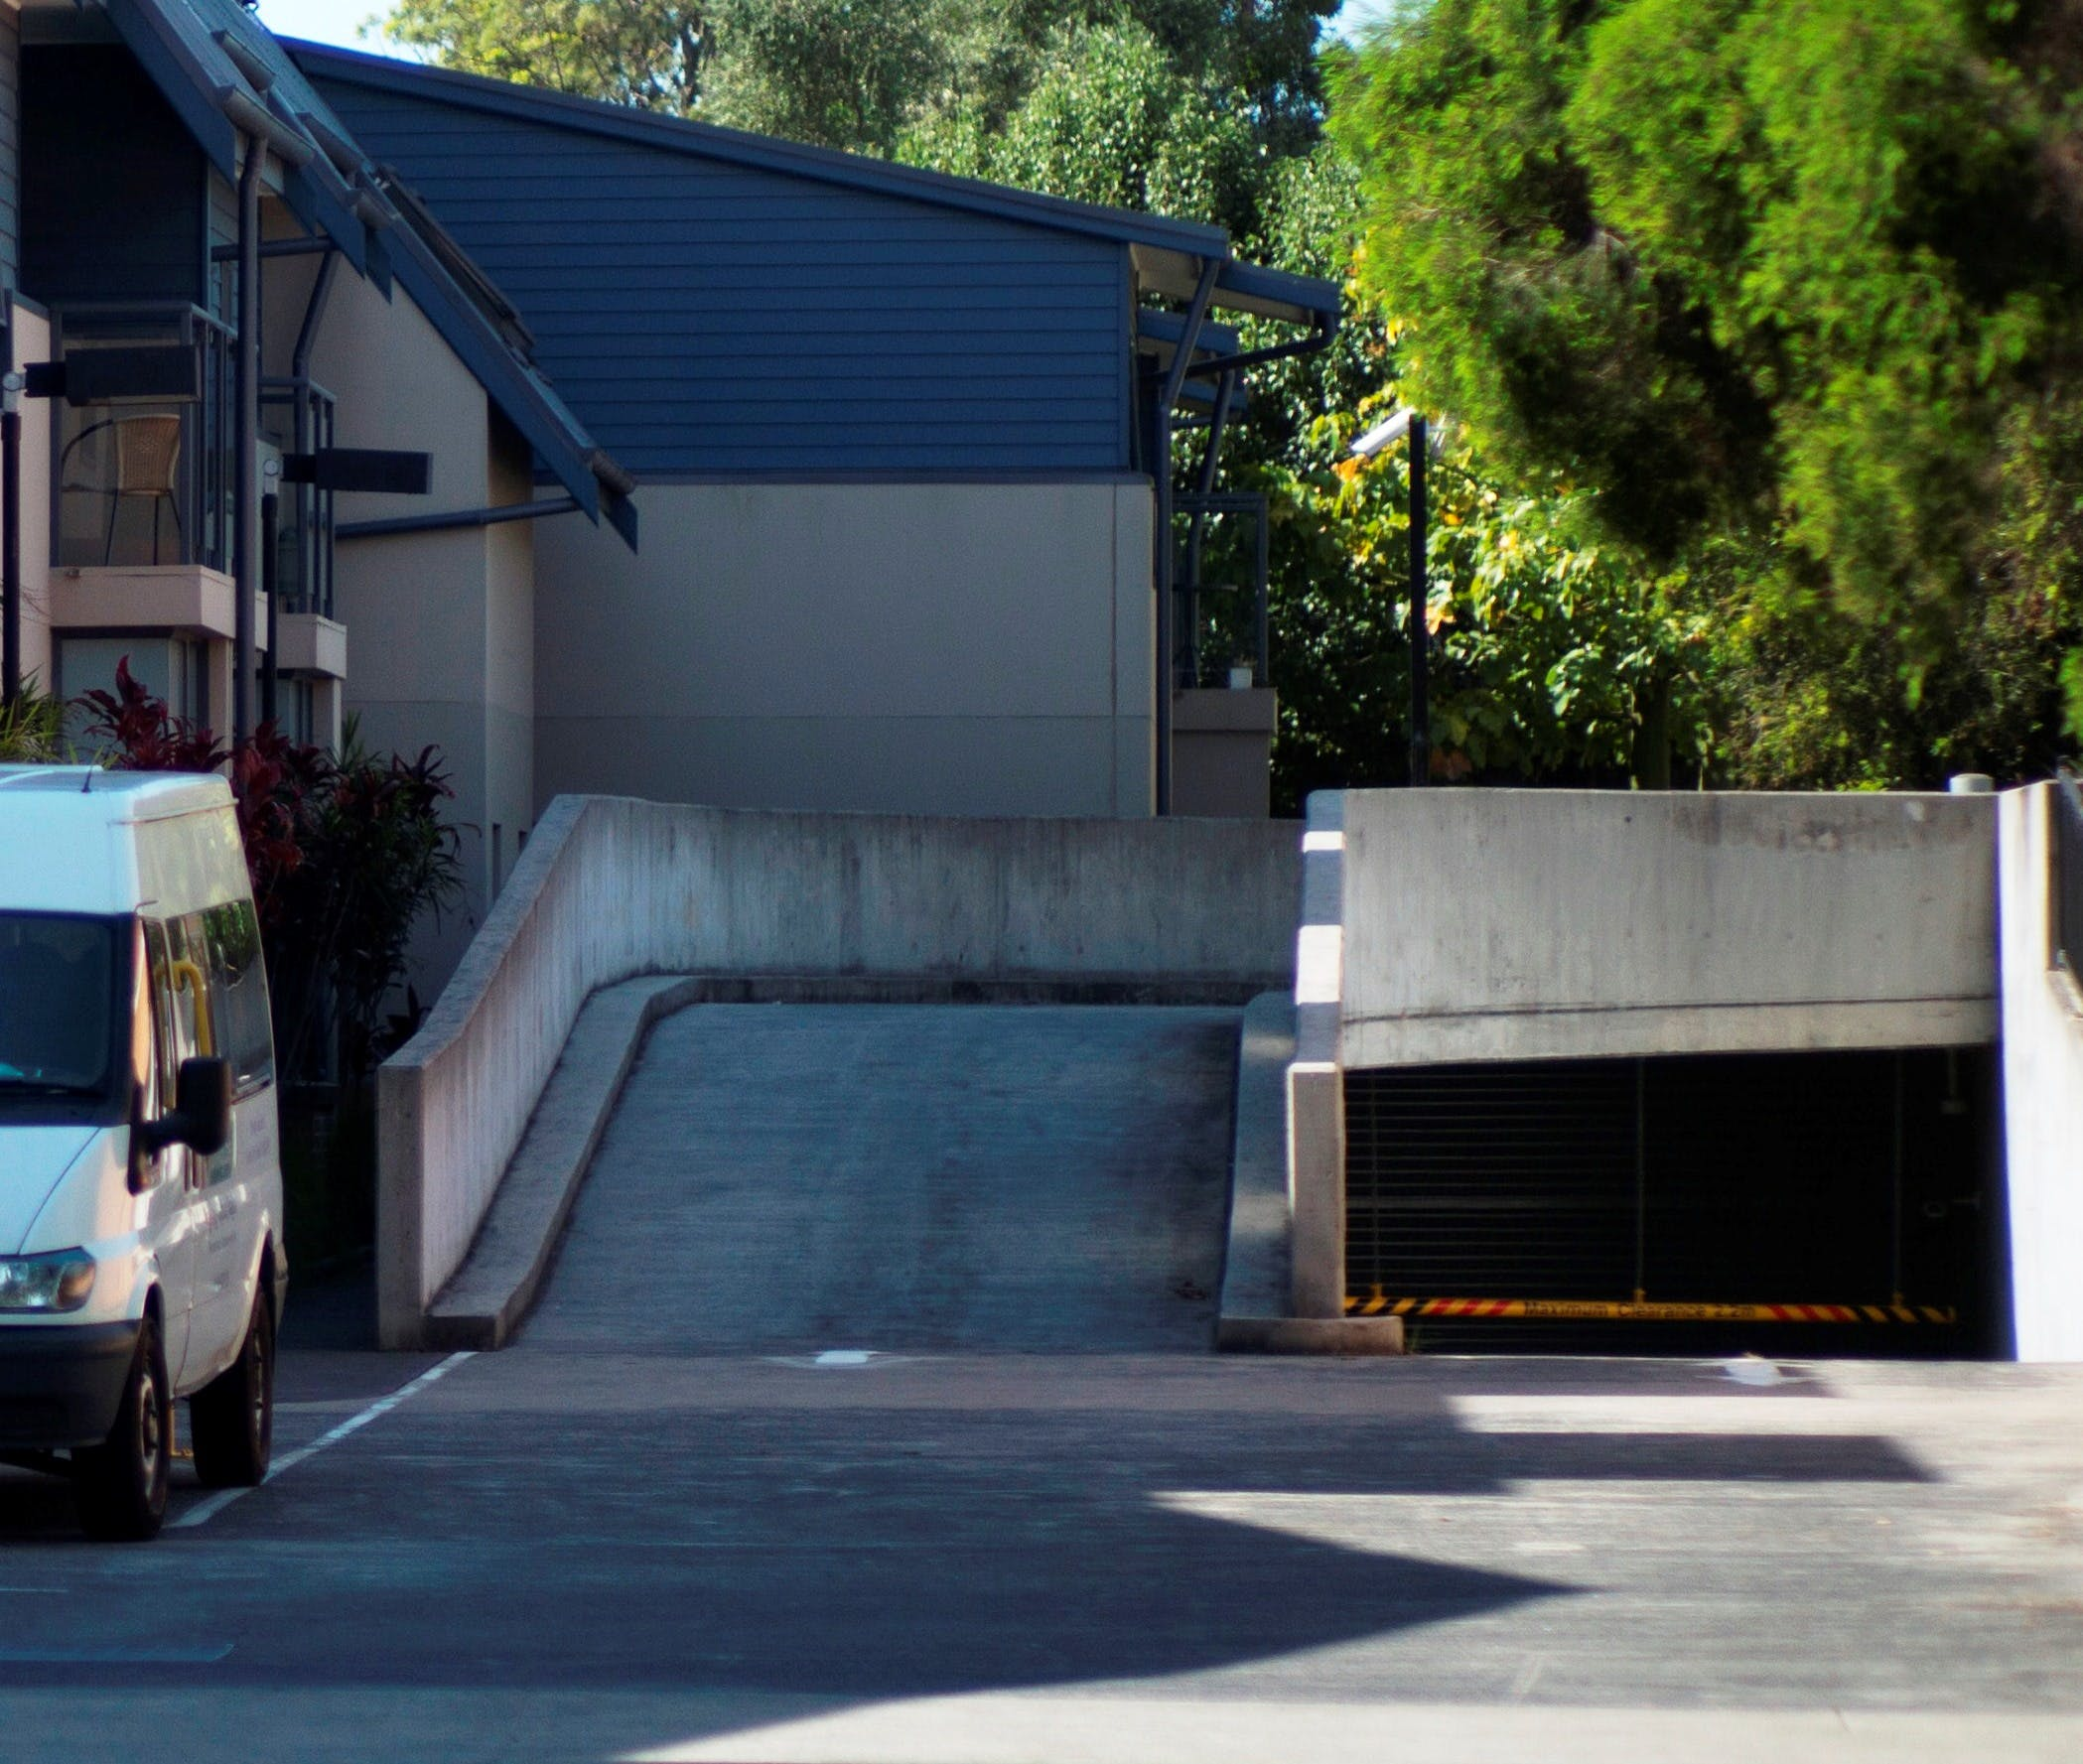 concrete ramp leading to a multilevel car park